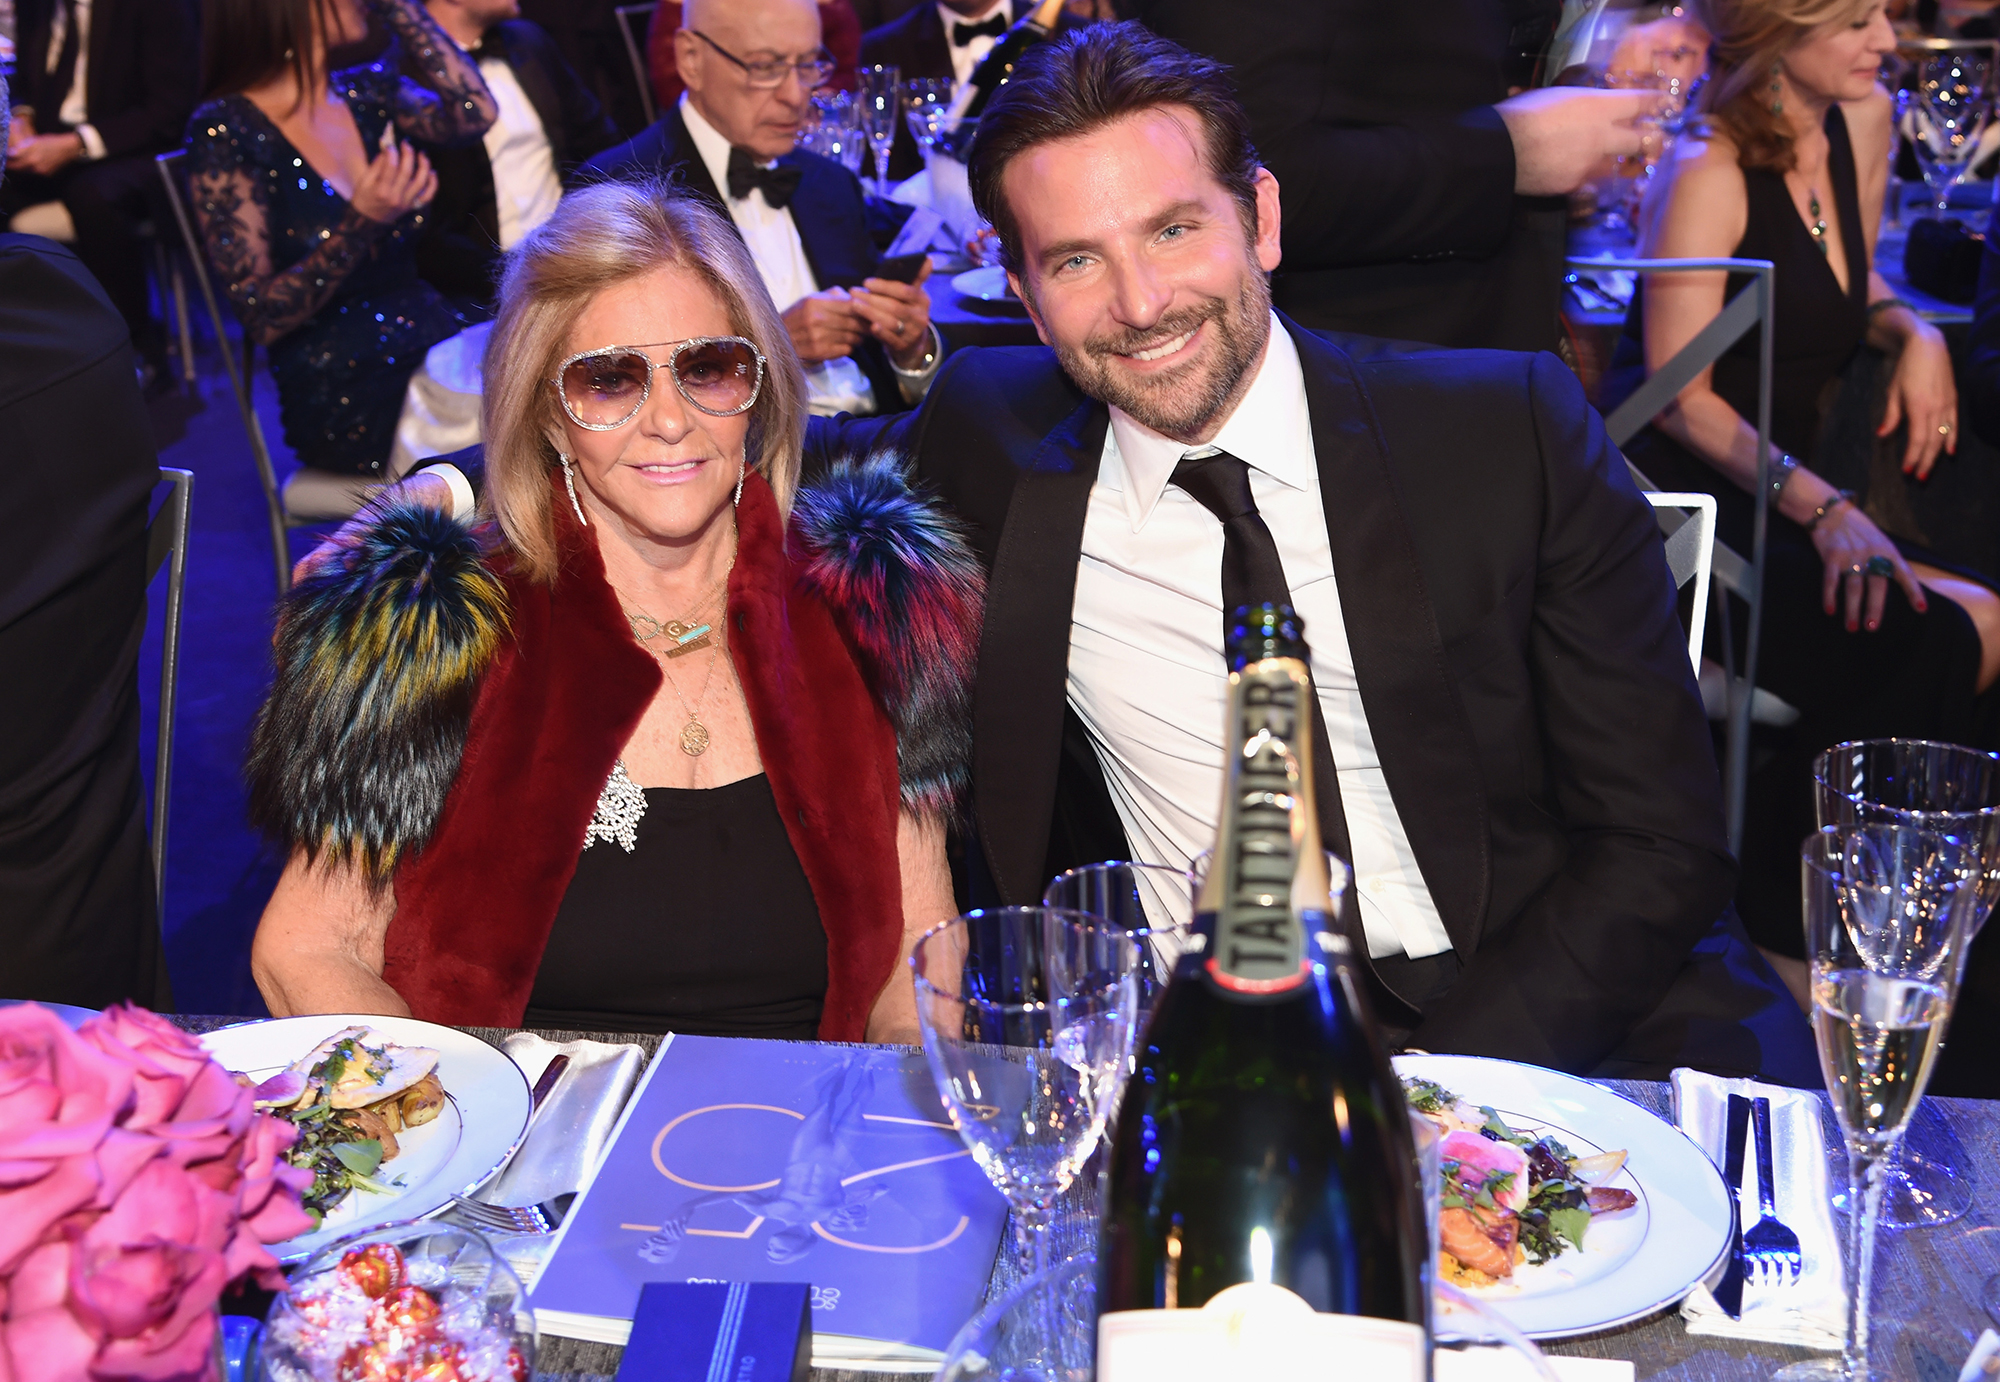 Bradley Cooper Brings His Mom to SAG Awards 2019 as Girlfriend Irina Shayk Works in Europe - Gloria Campano and Bradley Cooper during the 25th Annual Screen Actors Guild Awards at The Shrine Auditorium on January 27, 2019 in Los Angeles, California.